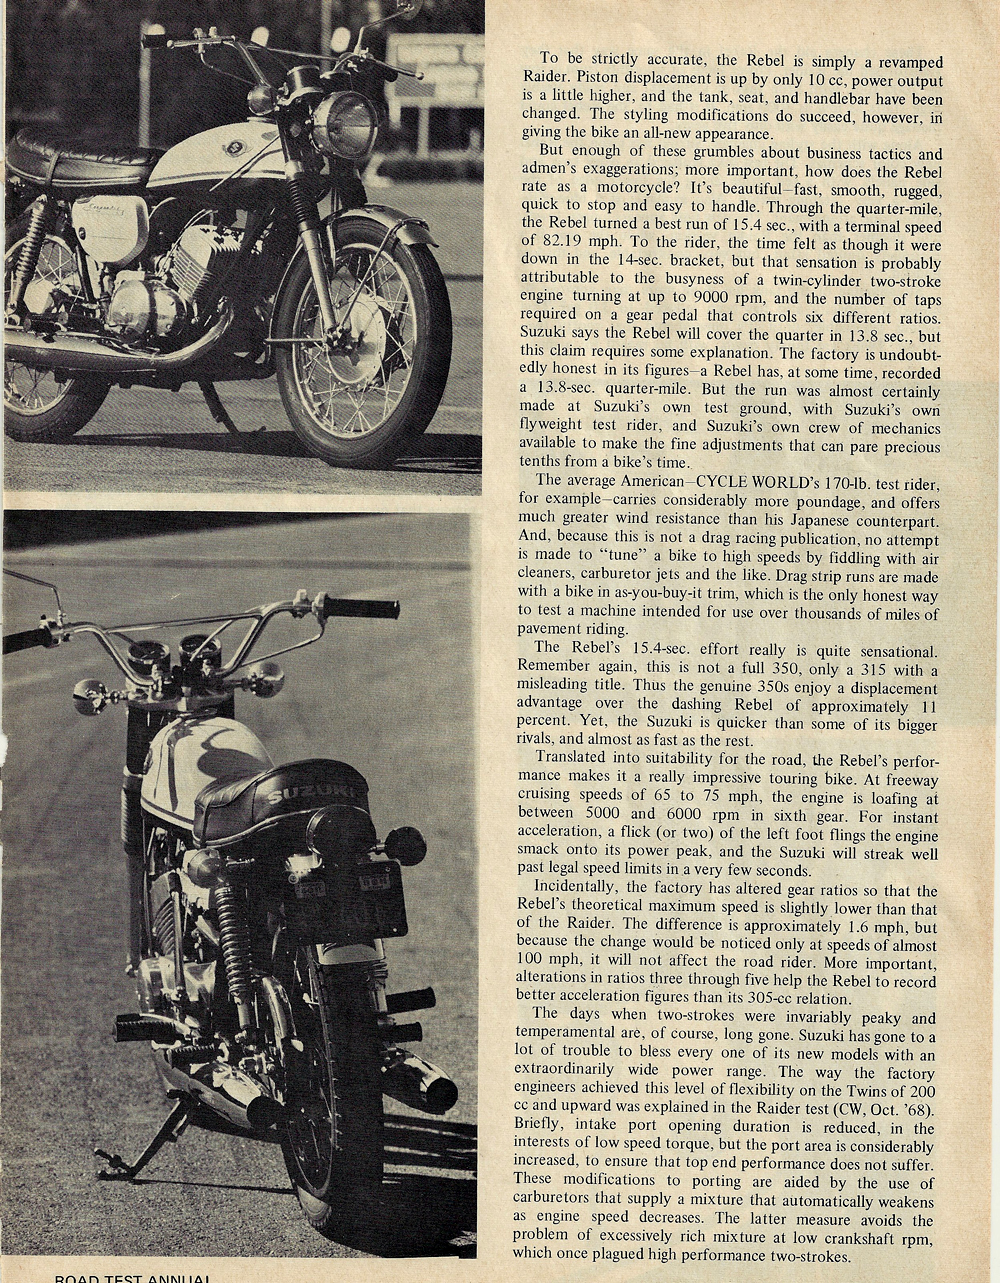 1969 Suzuki T350 Rebel road test 2.jpg